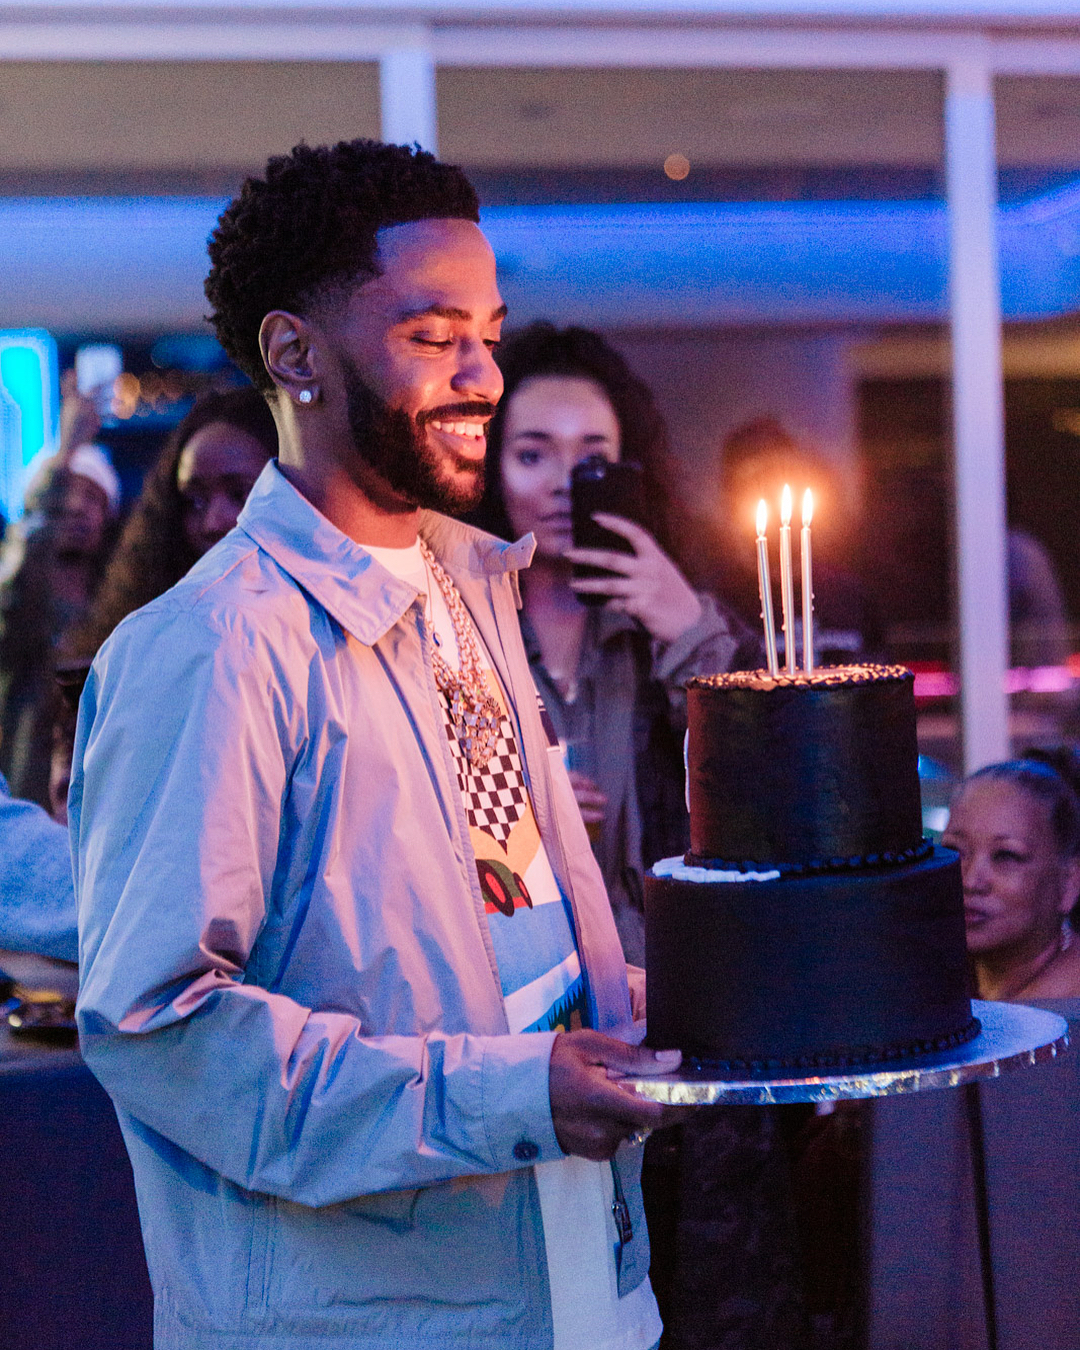 SPOTTED: Big Sean Continues His Birthday Celebrations in Prada